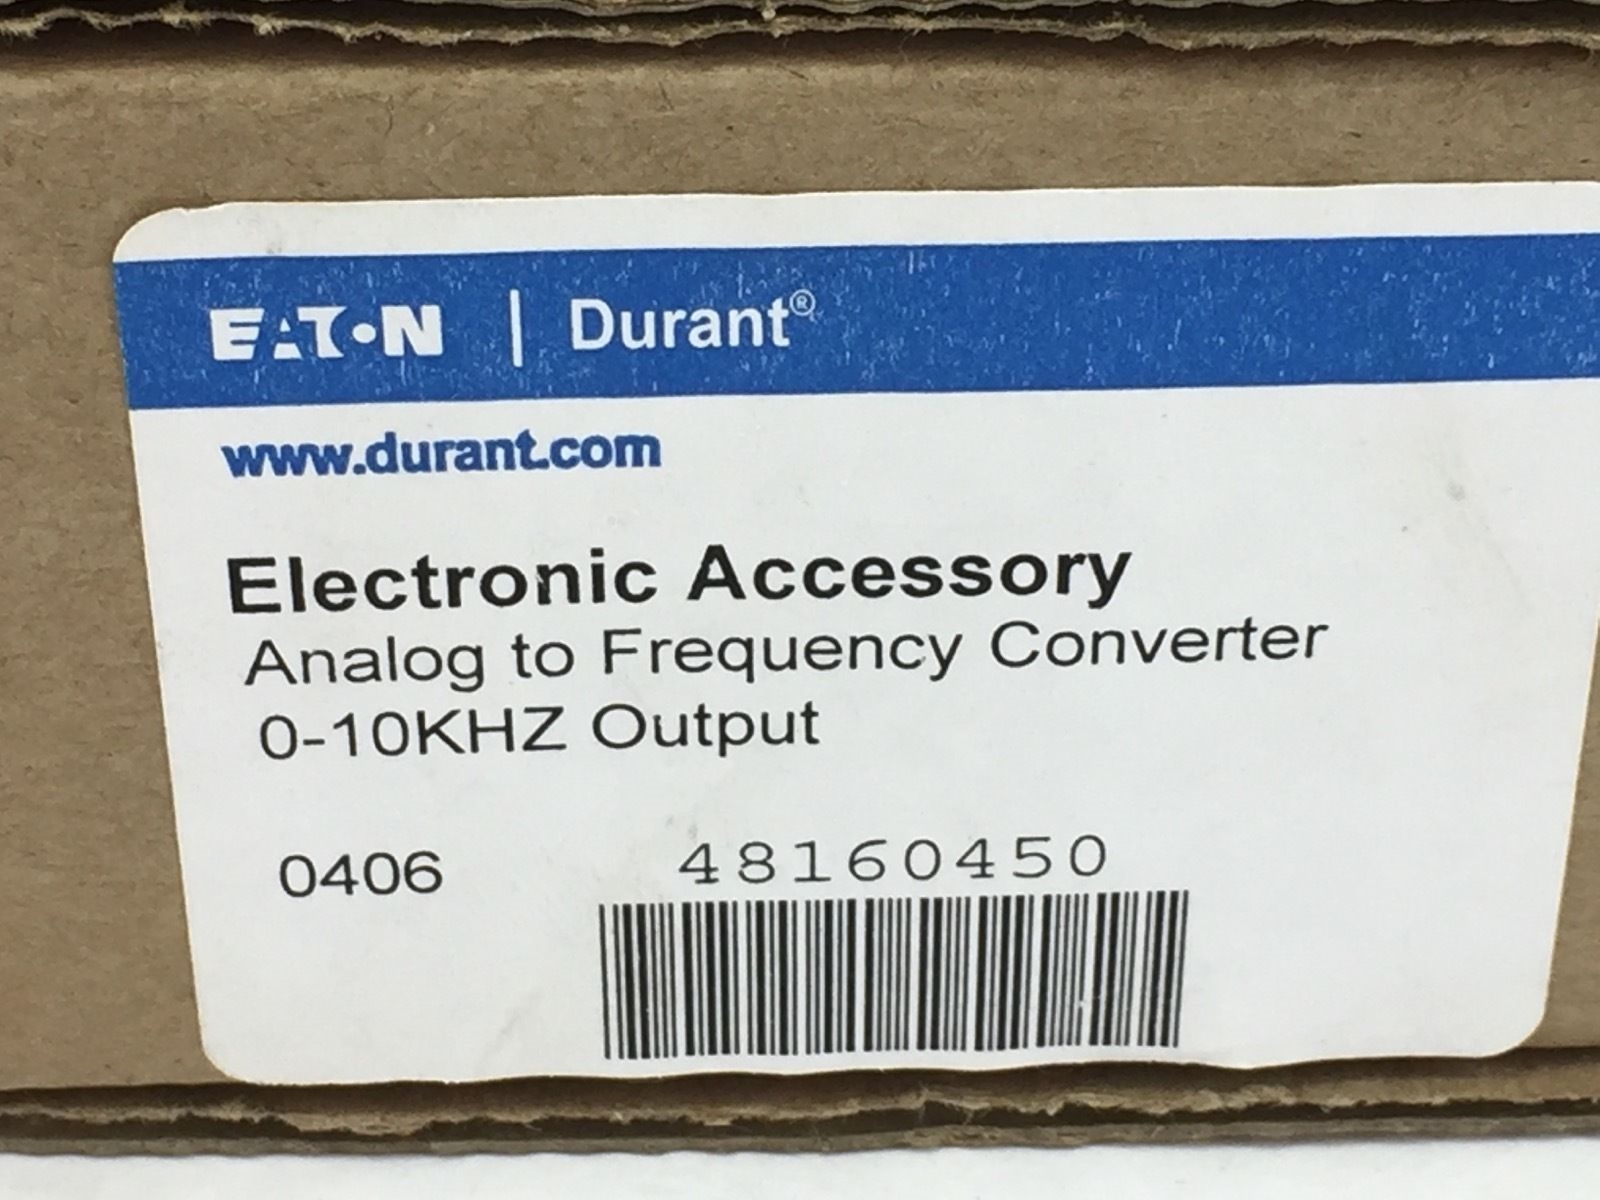 NEW! EATON DURANT 48160450 ANALOG TO FREQUENCY CONVERTER (H72) 2